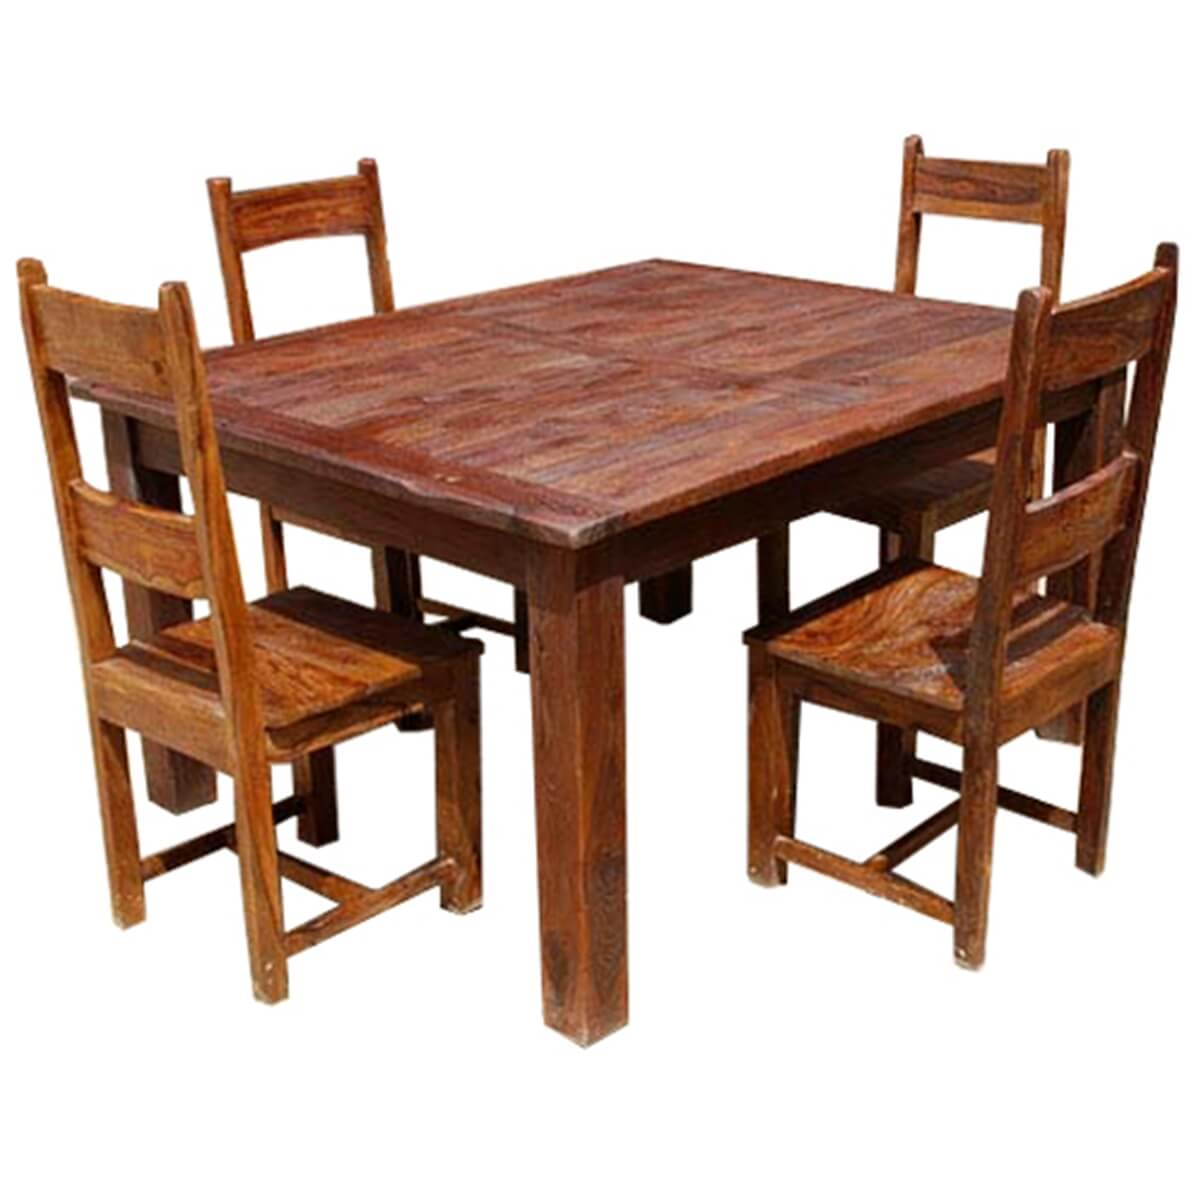 Rustic solid wood appalachian dining room table chair set for Solid wood dining table sets